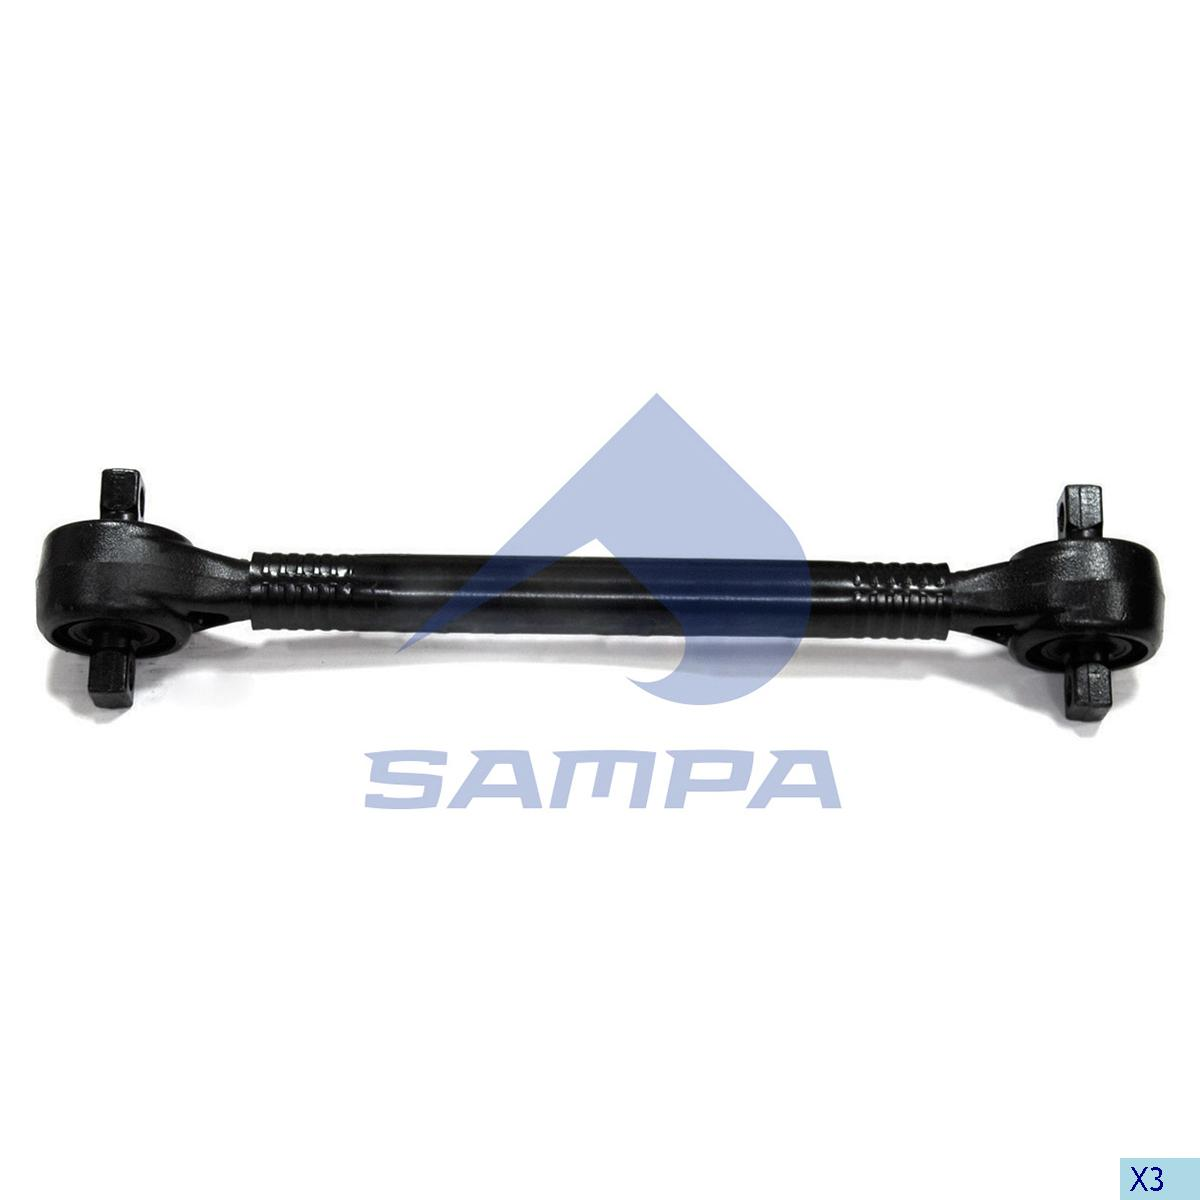 Torque Rod, Scania, Suspension